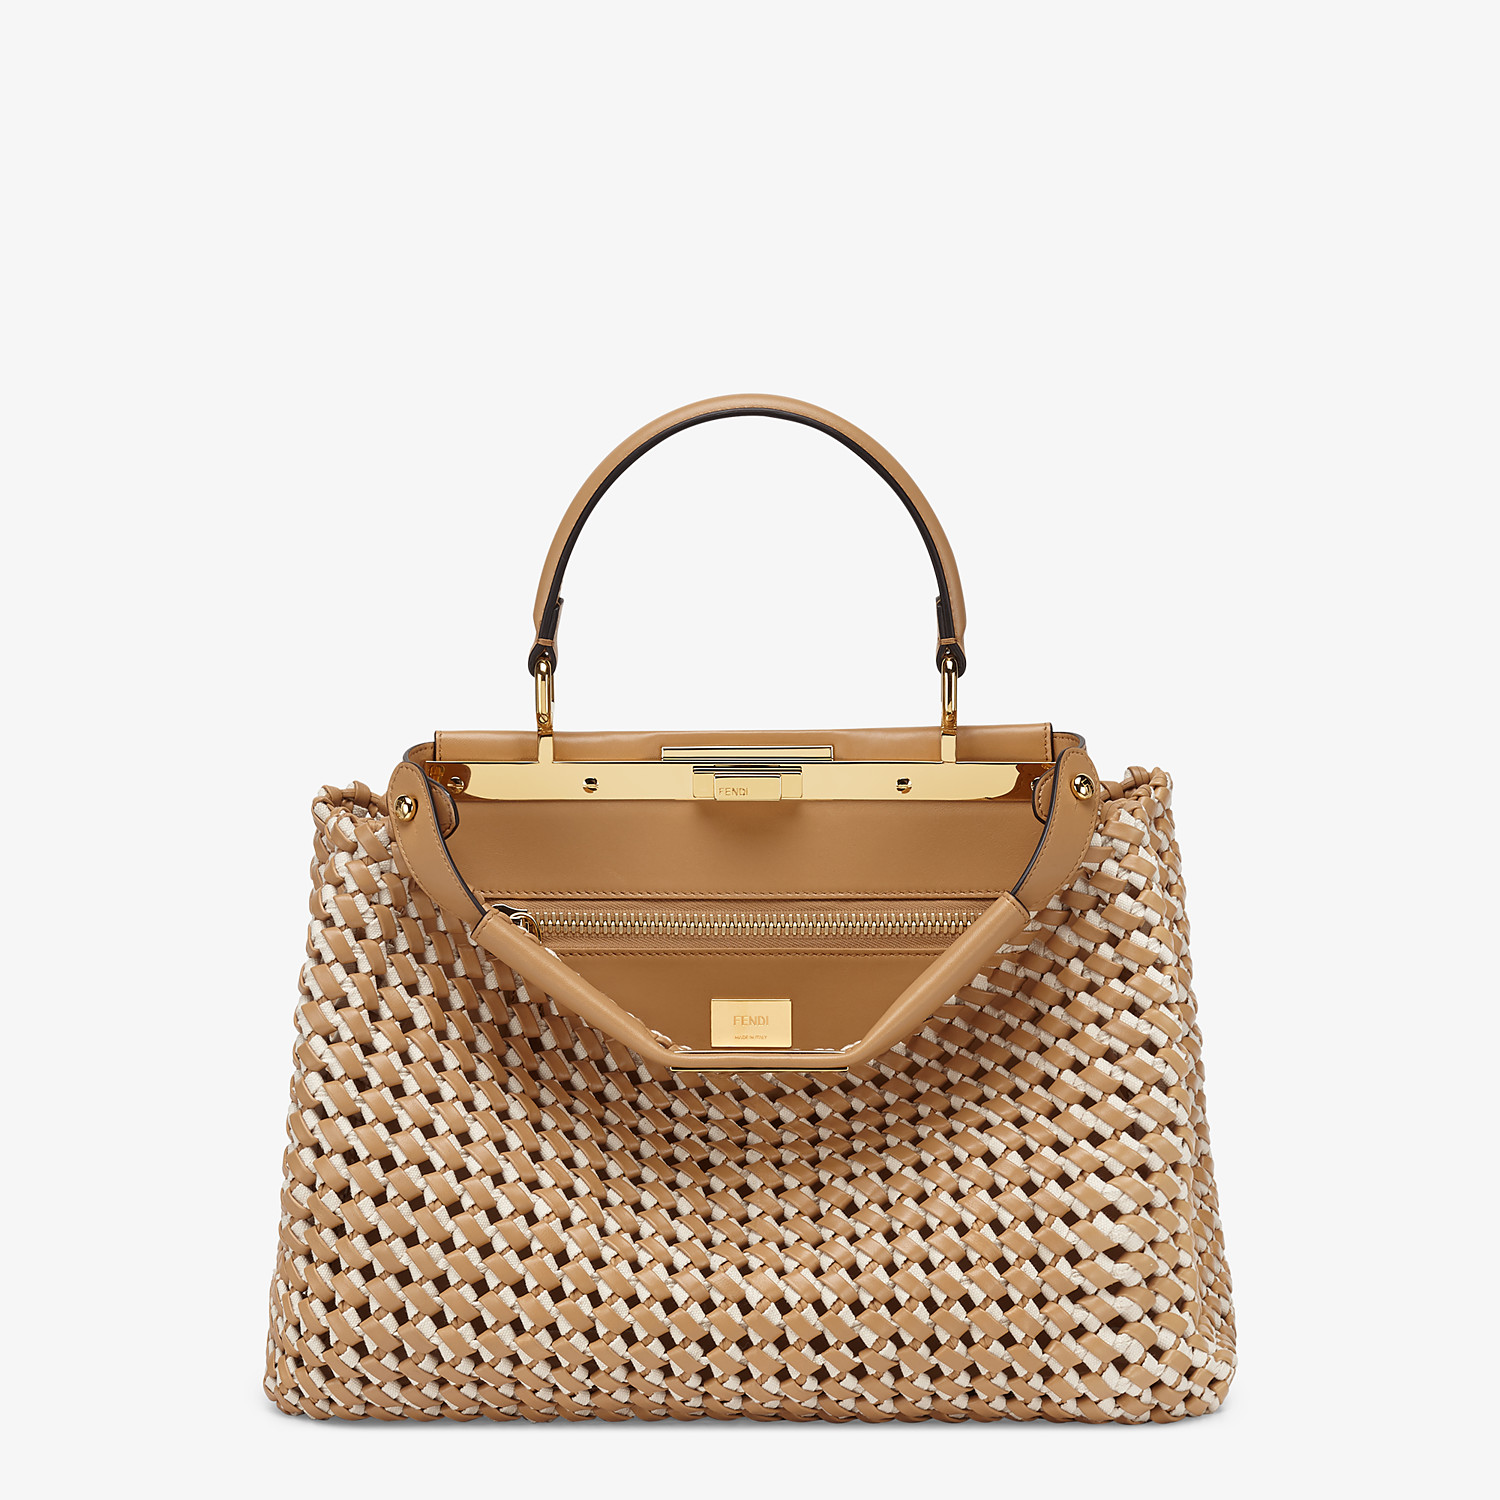 FENDI PEEKABOO ICONIC MEDIUM - Leather and canvas interlace bag - view 1 detail